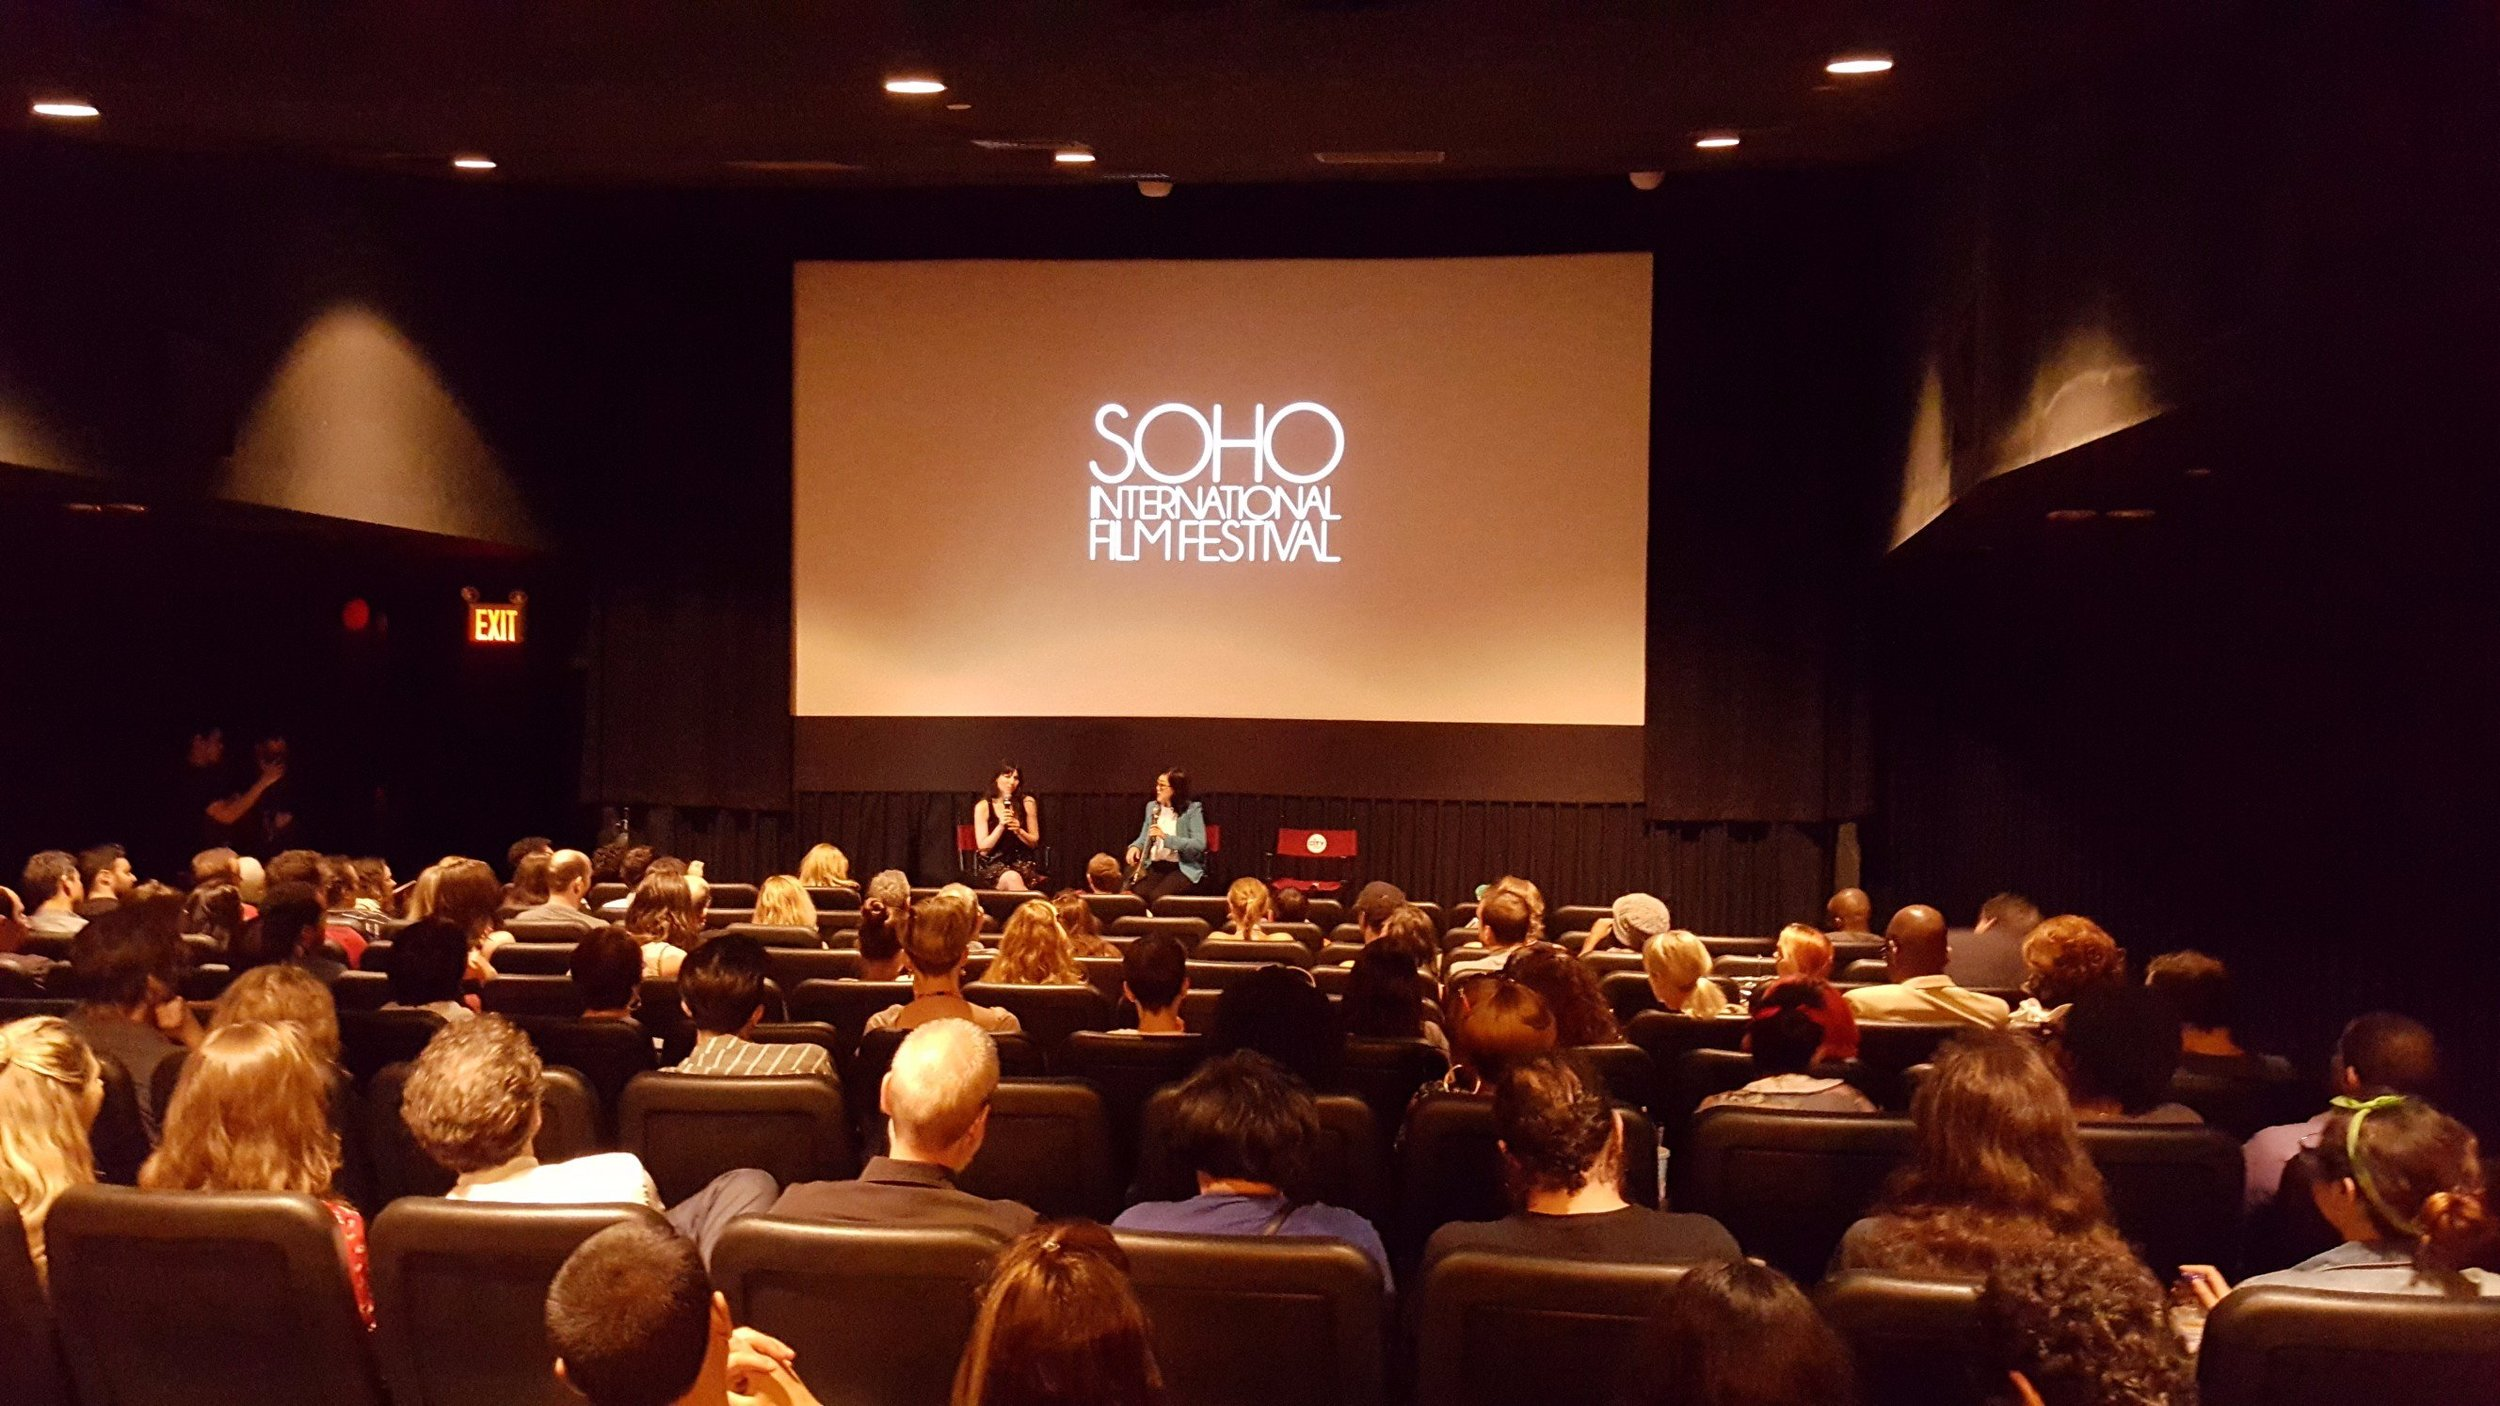 soho screening mia nyc